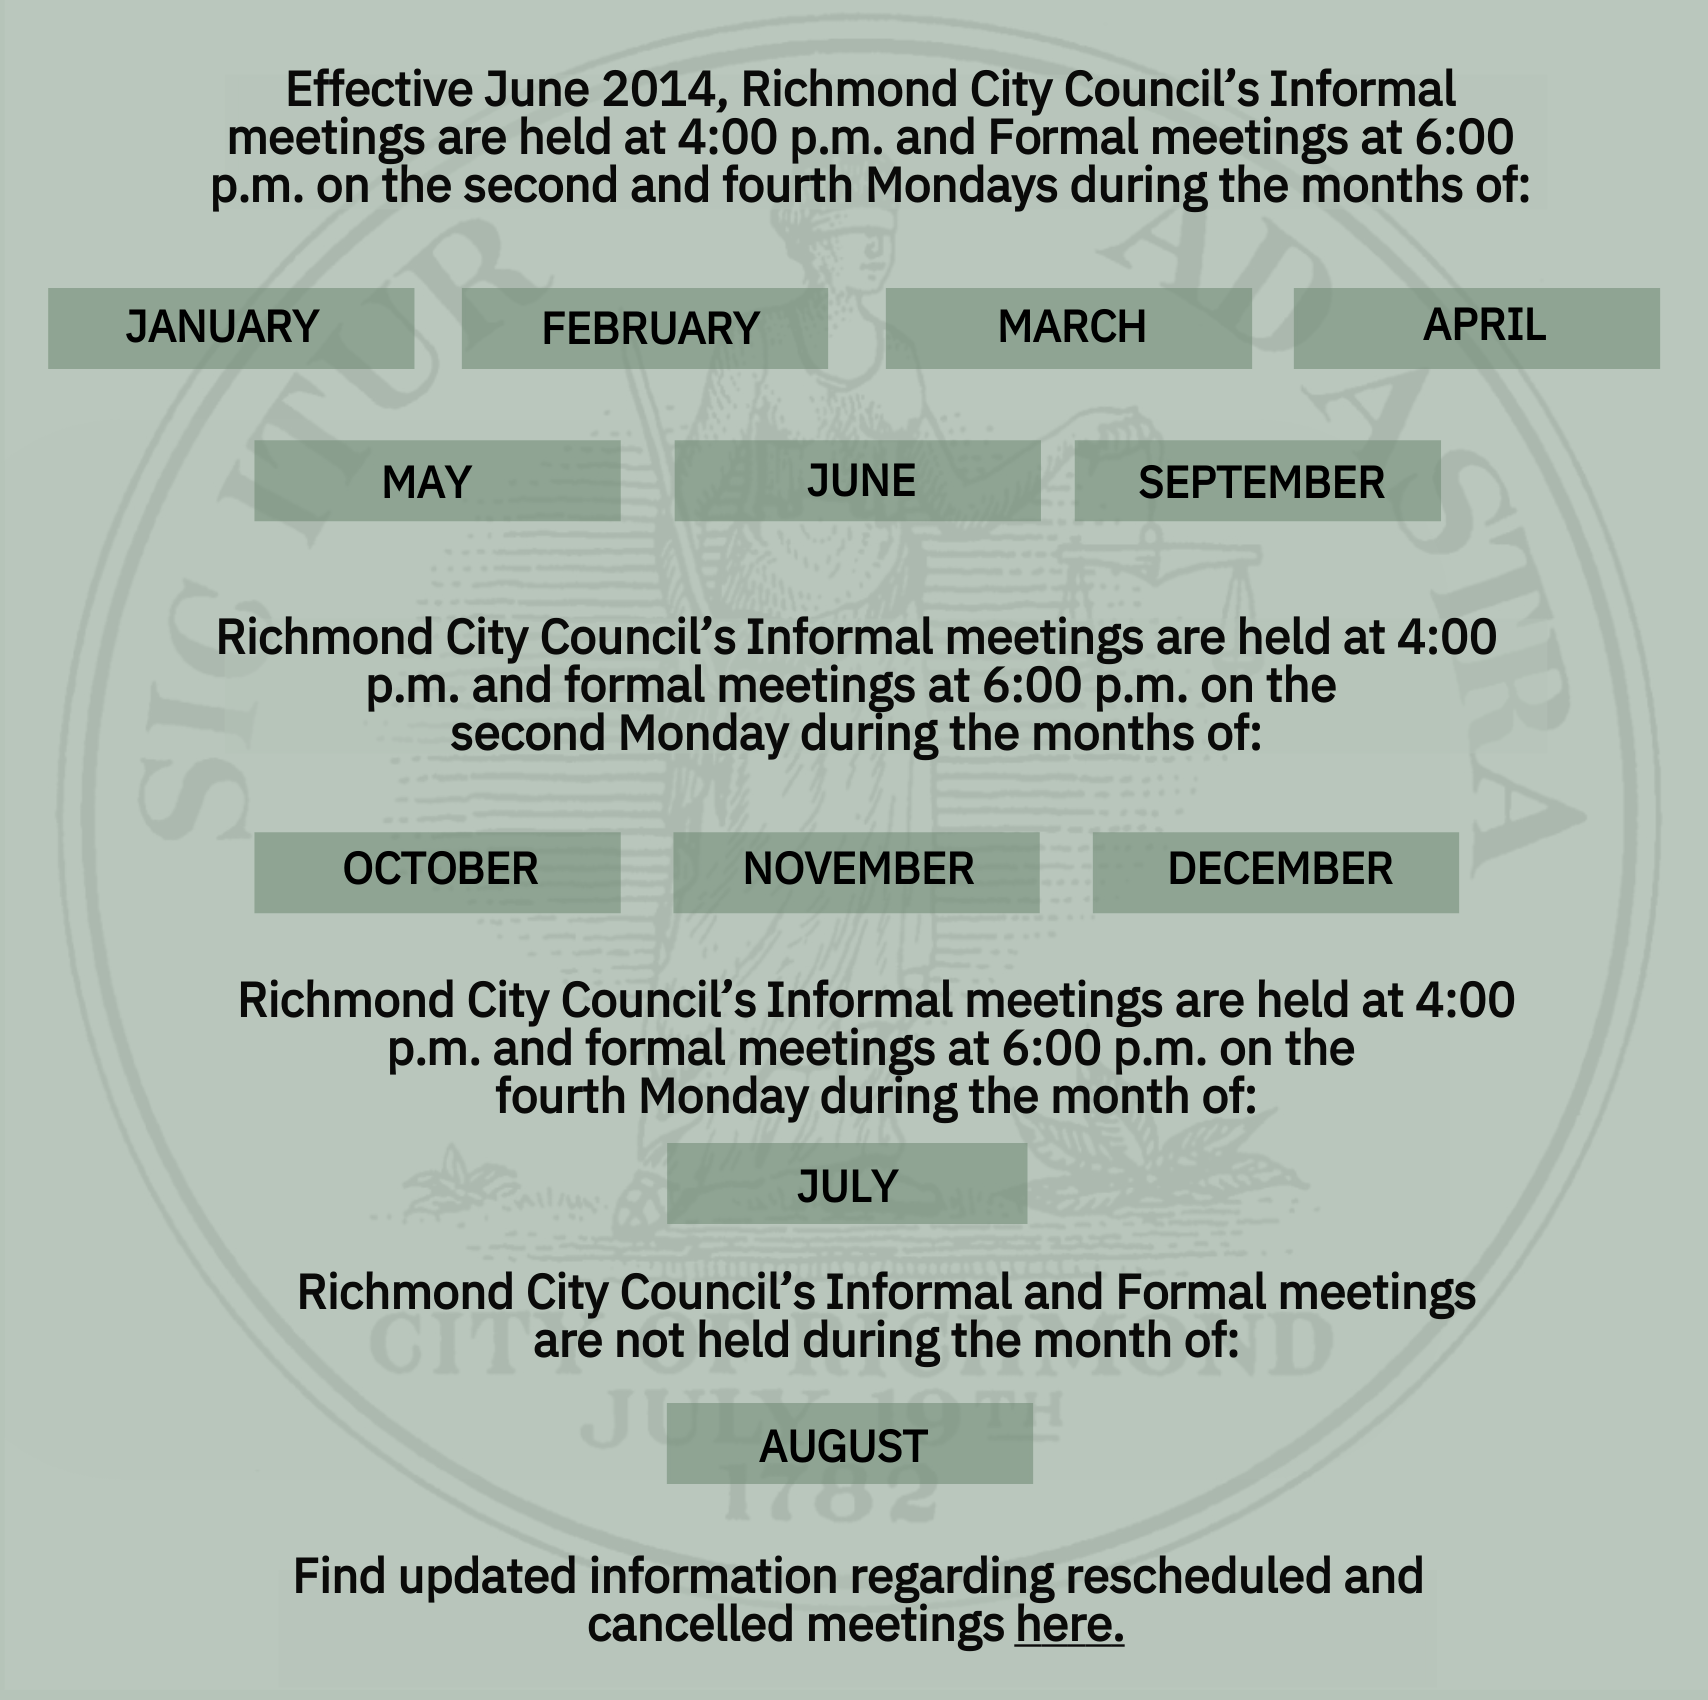 Informal and Formal Council Meetings are held at 4:00pm and 6:00pm on the second and fourth Mondays during the months of: January, February, March, April, May, June, September and October. Informal and Formal meetings are held at 4:00 pm and 6:00 pm on the second Monday during the months of November and December. Informal and Formal meetings are held at 4:00pm and 6:00 pm on the fourth Monday during the month of July. Informal and Formal work sessions are not held during the month of August.